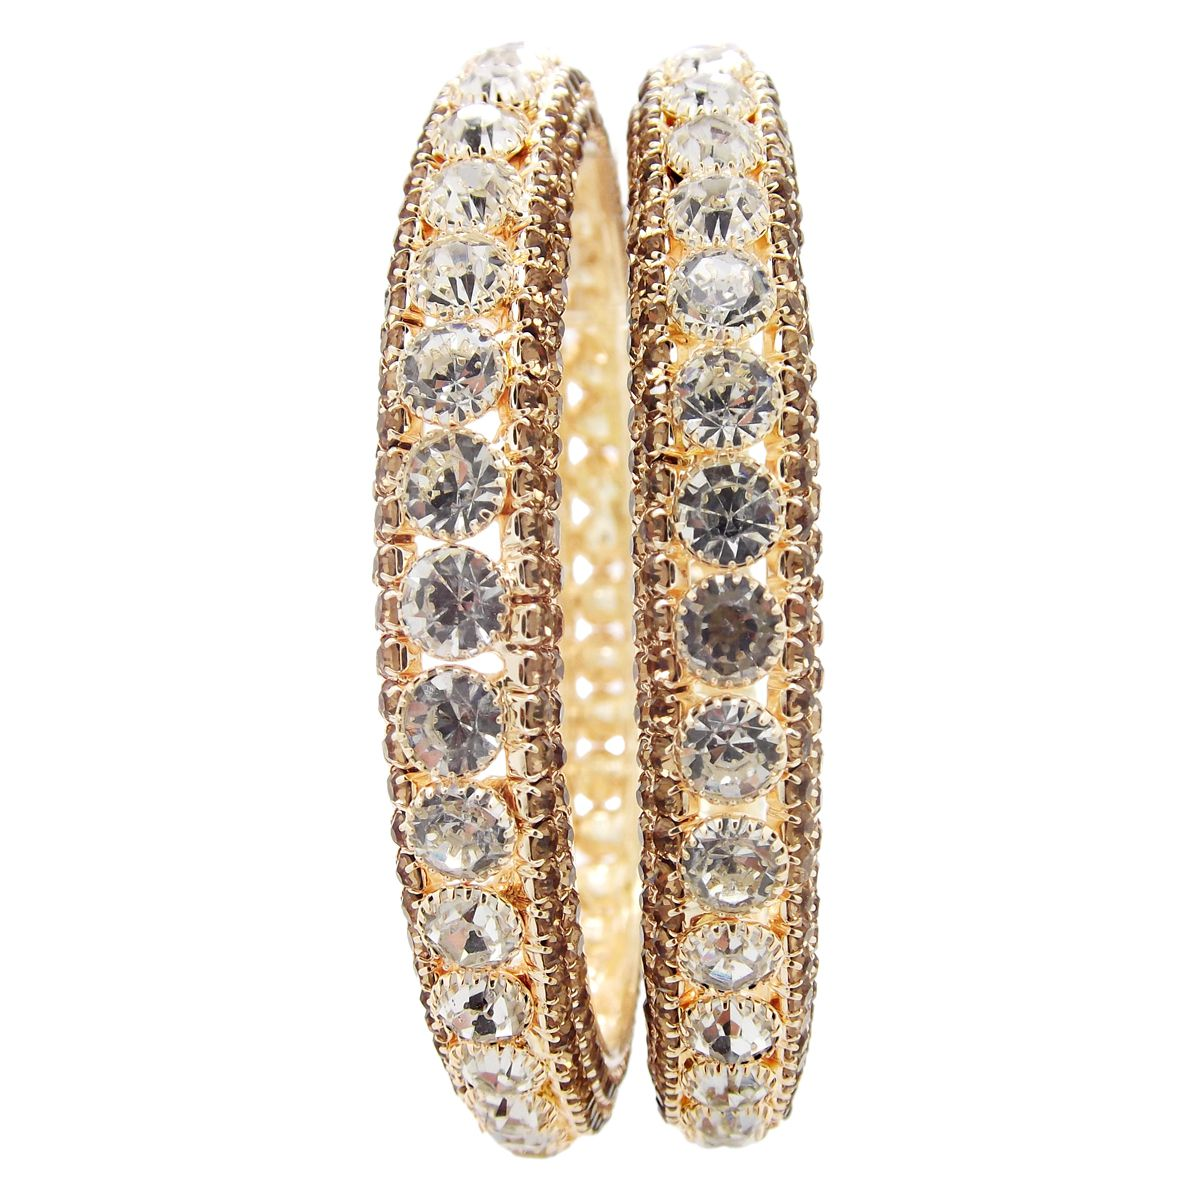 9blings Gold Plated Fancy Bangles 2pc LCT White CZ Stone